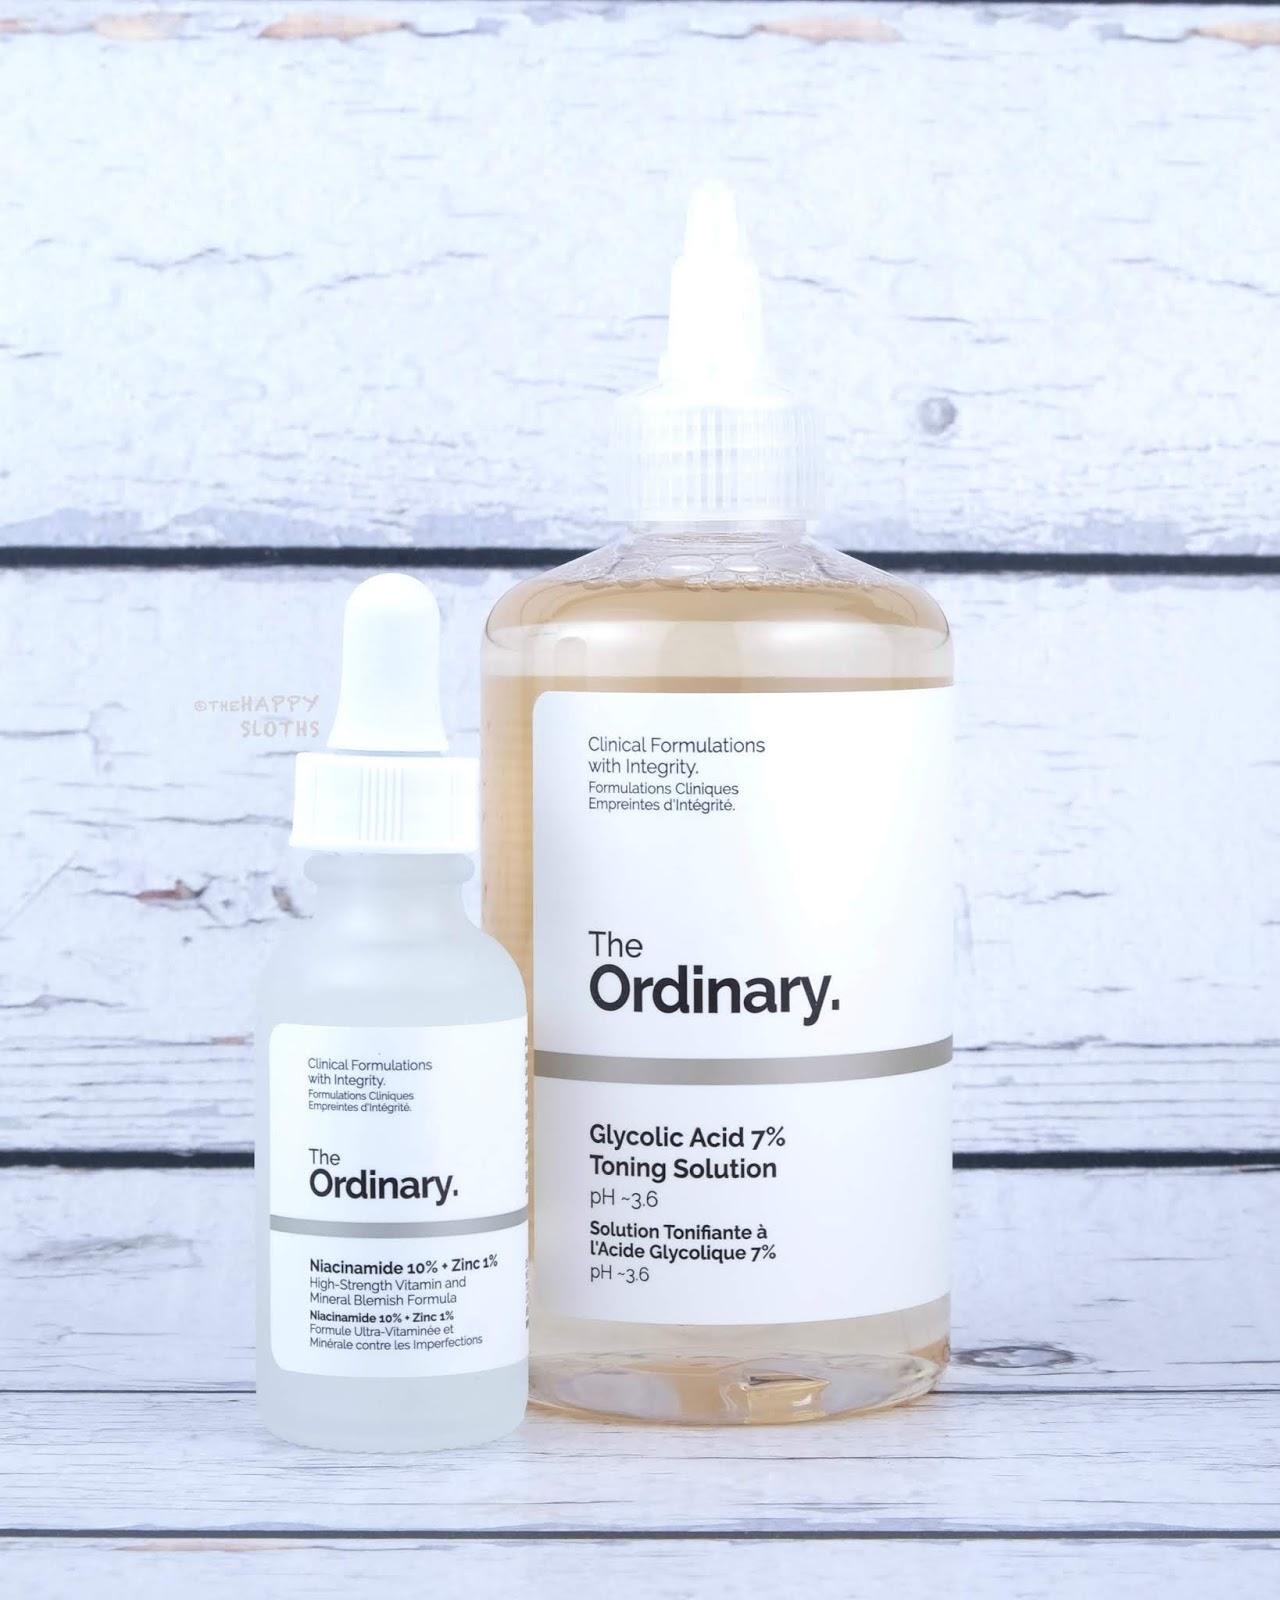 DECIEM | The Ordinary Glycolic Acid 7% Toning Solution & Niacinamide 10% + Zinc 1%: Review